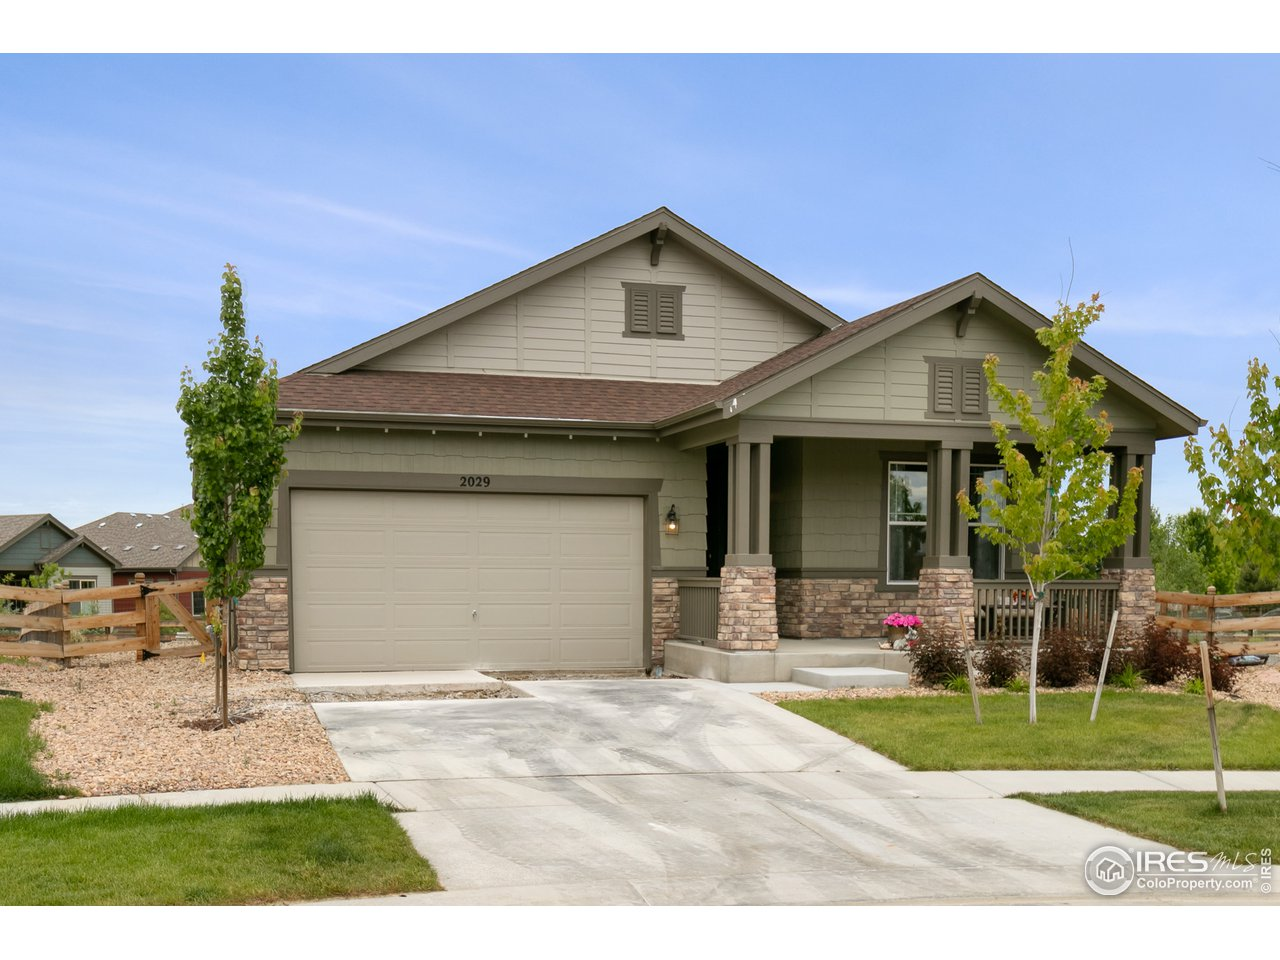 2029 Sicily Cir, Longmont CO 80503